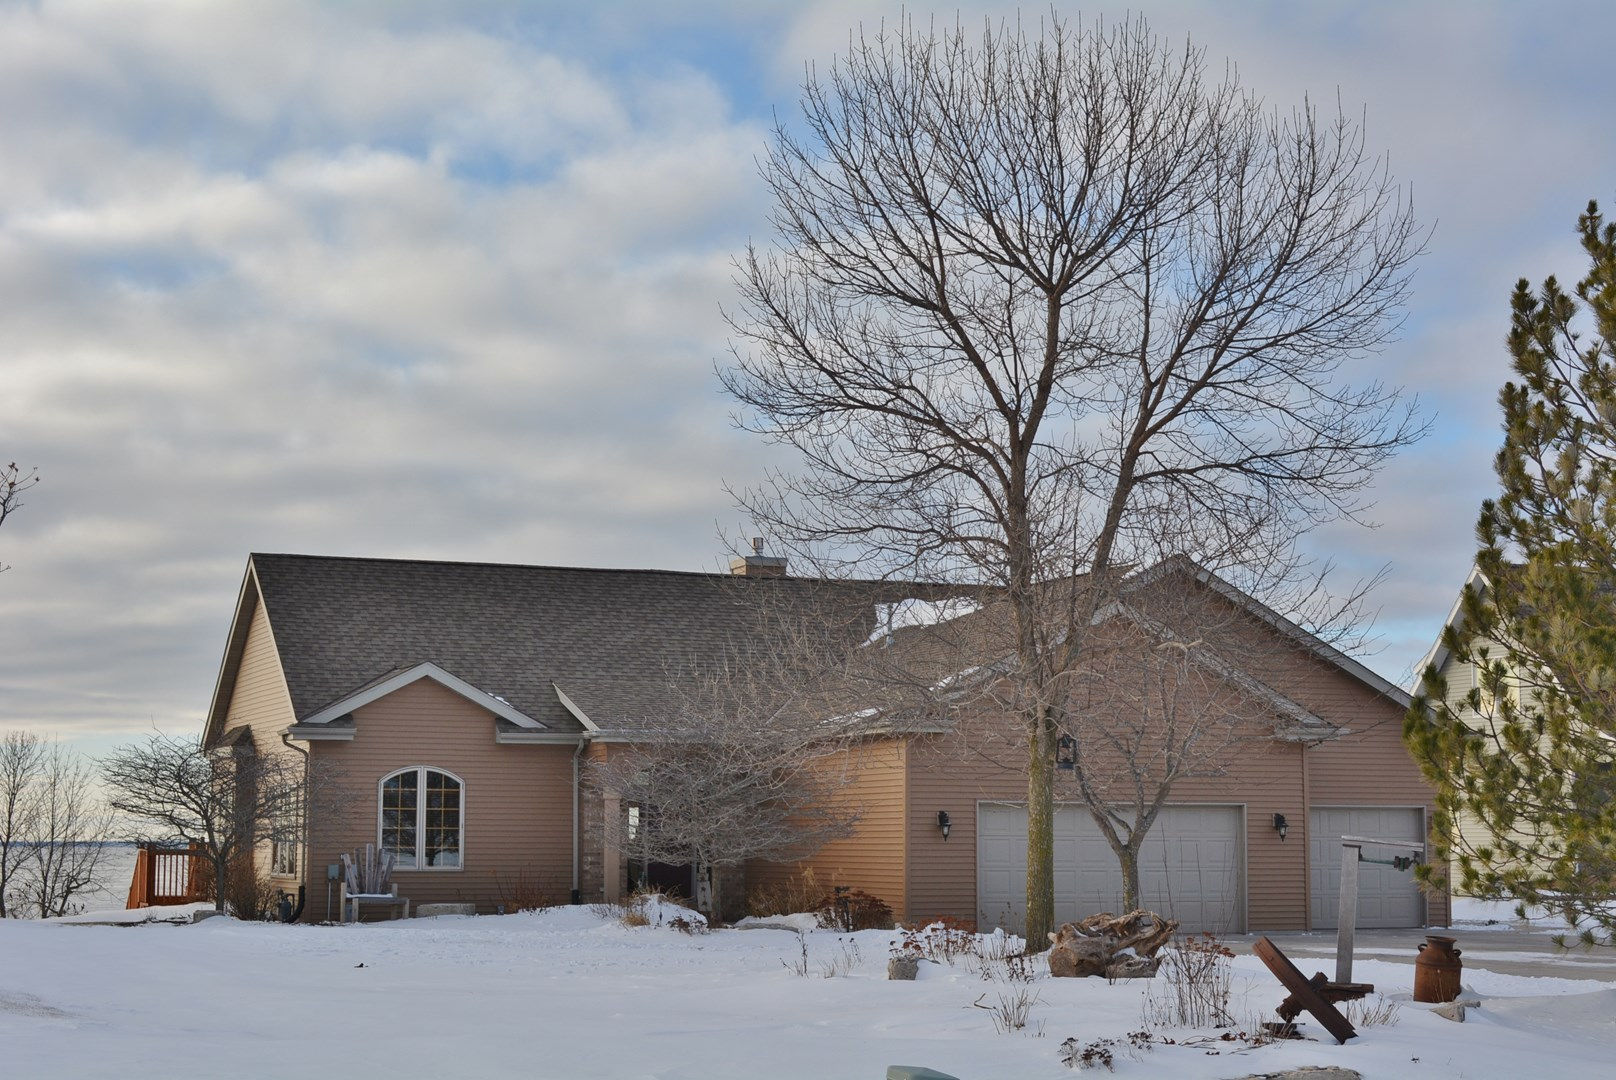 1137 Paramount Dr, Chilton, WI 53014